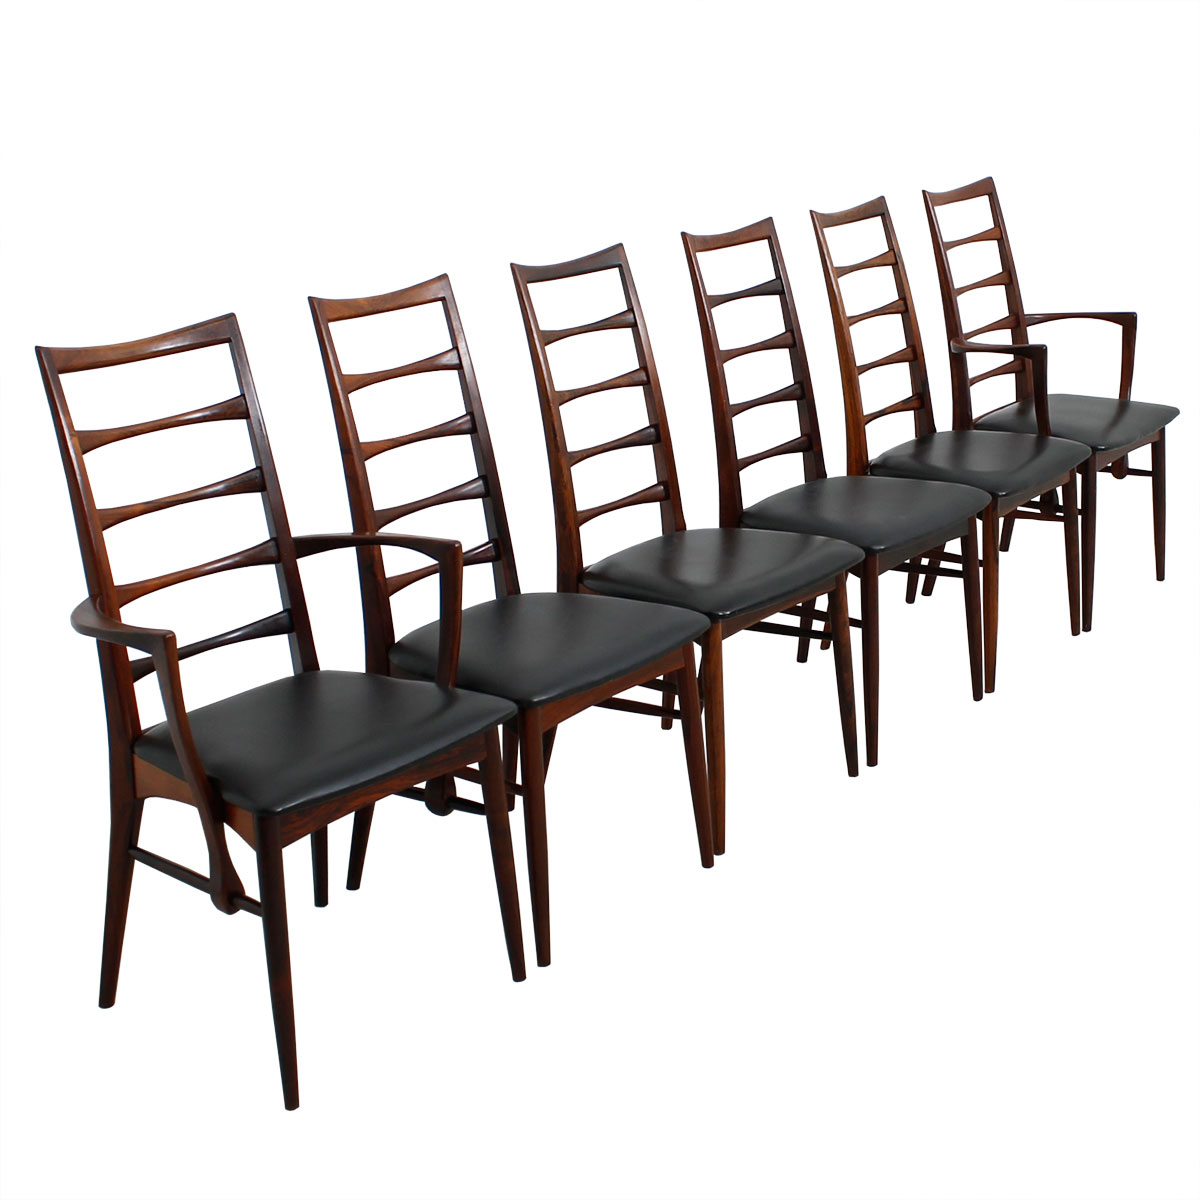 Set of 10 Koefoeds Hornslet Danish Modern Rosewood Dining Chairs